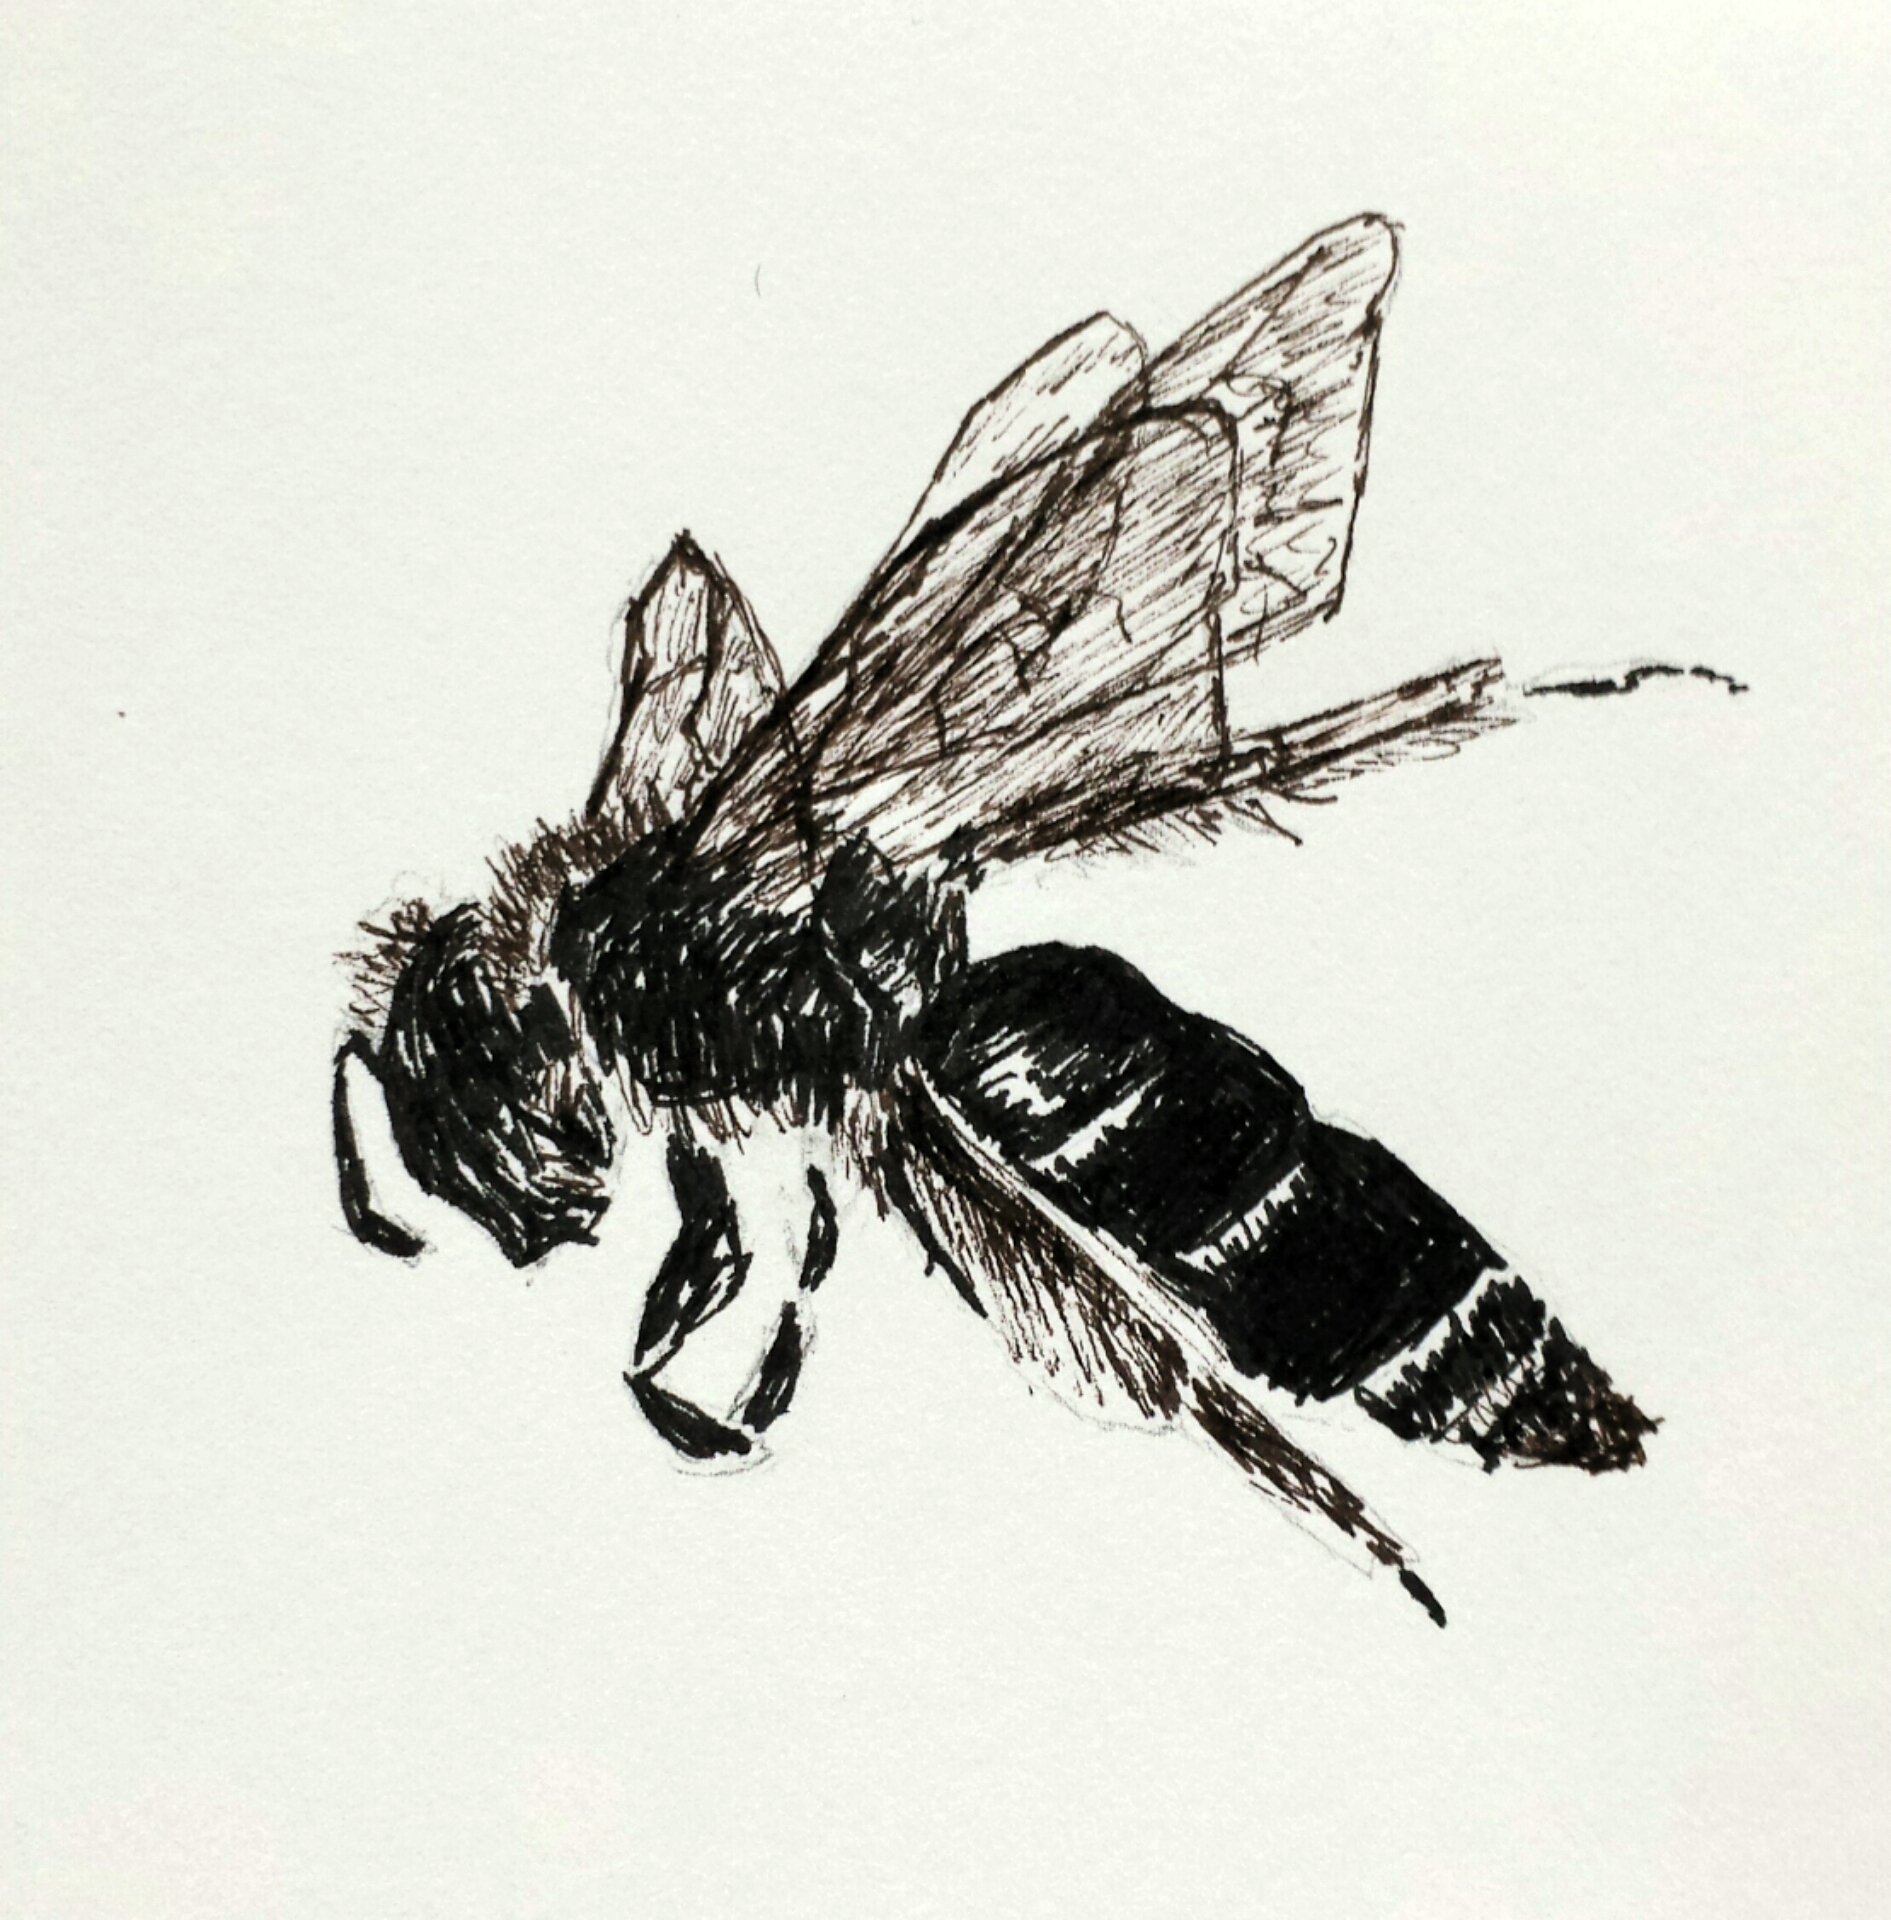 Wasp, pen and ink, 2016